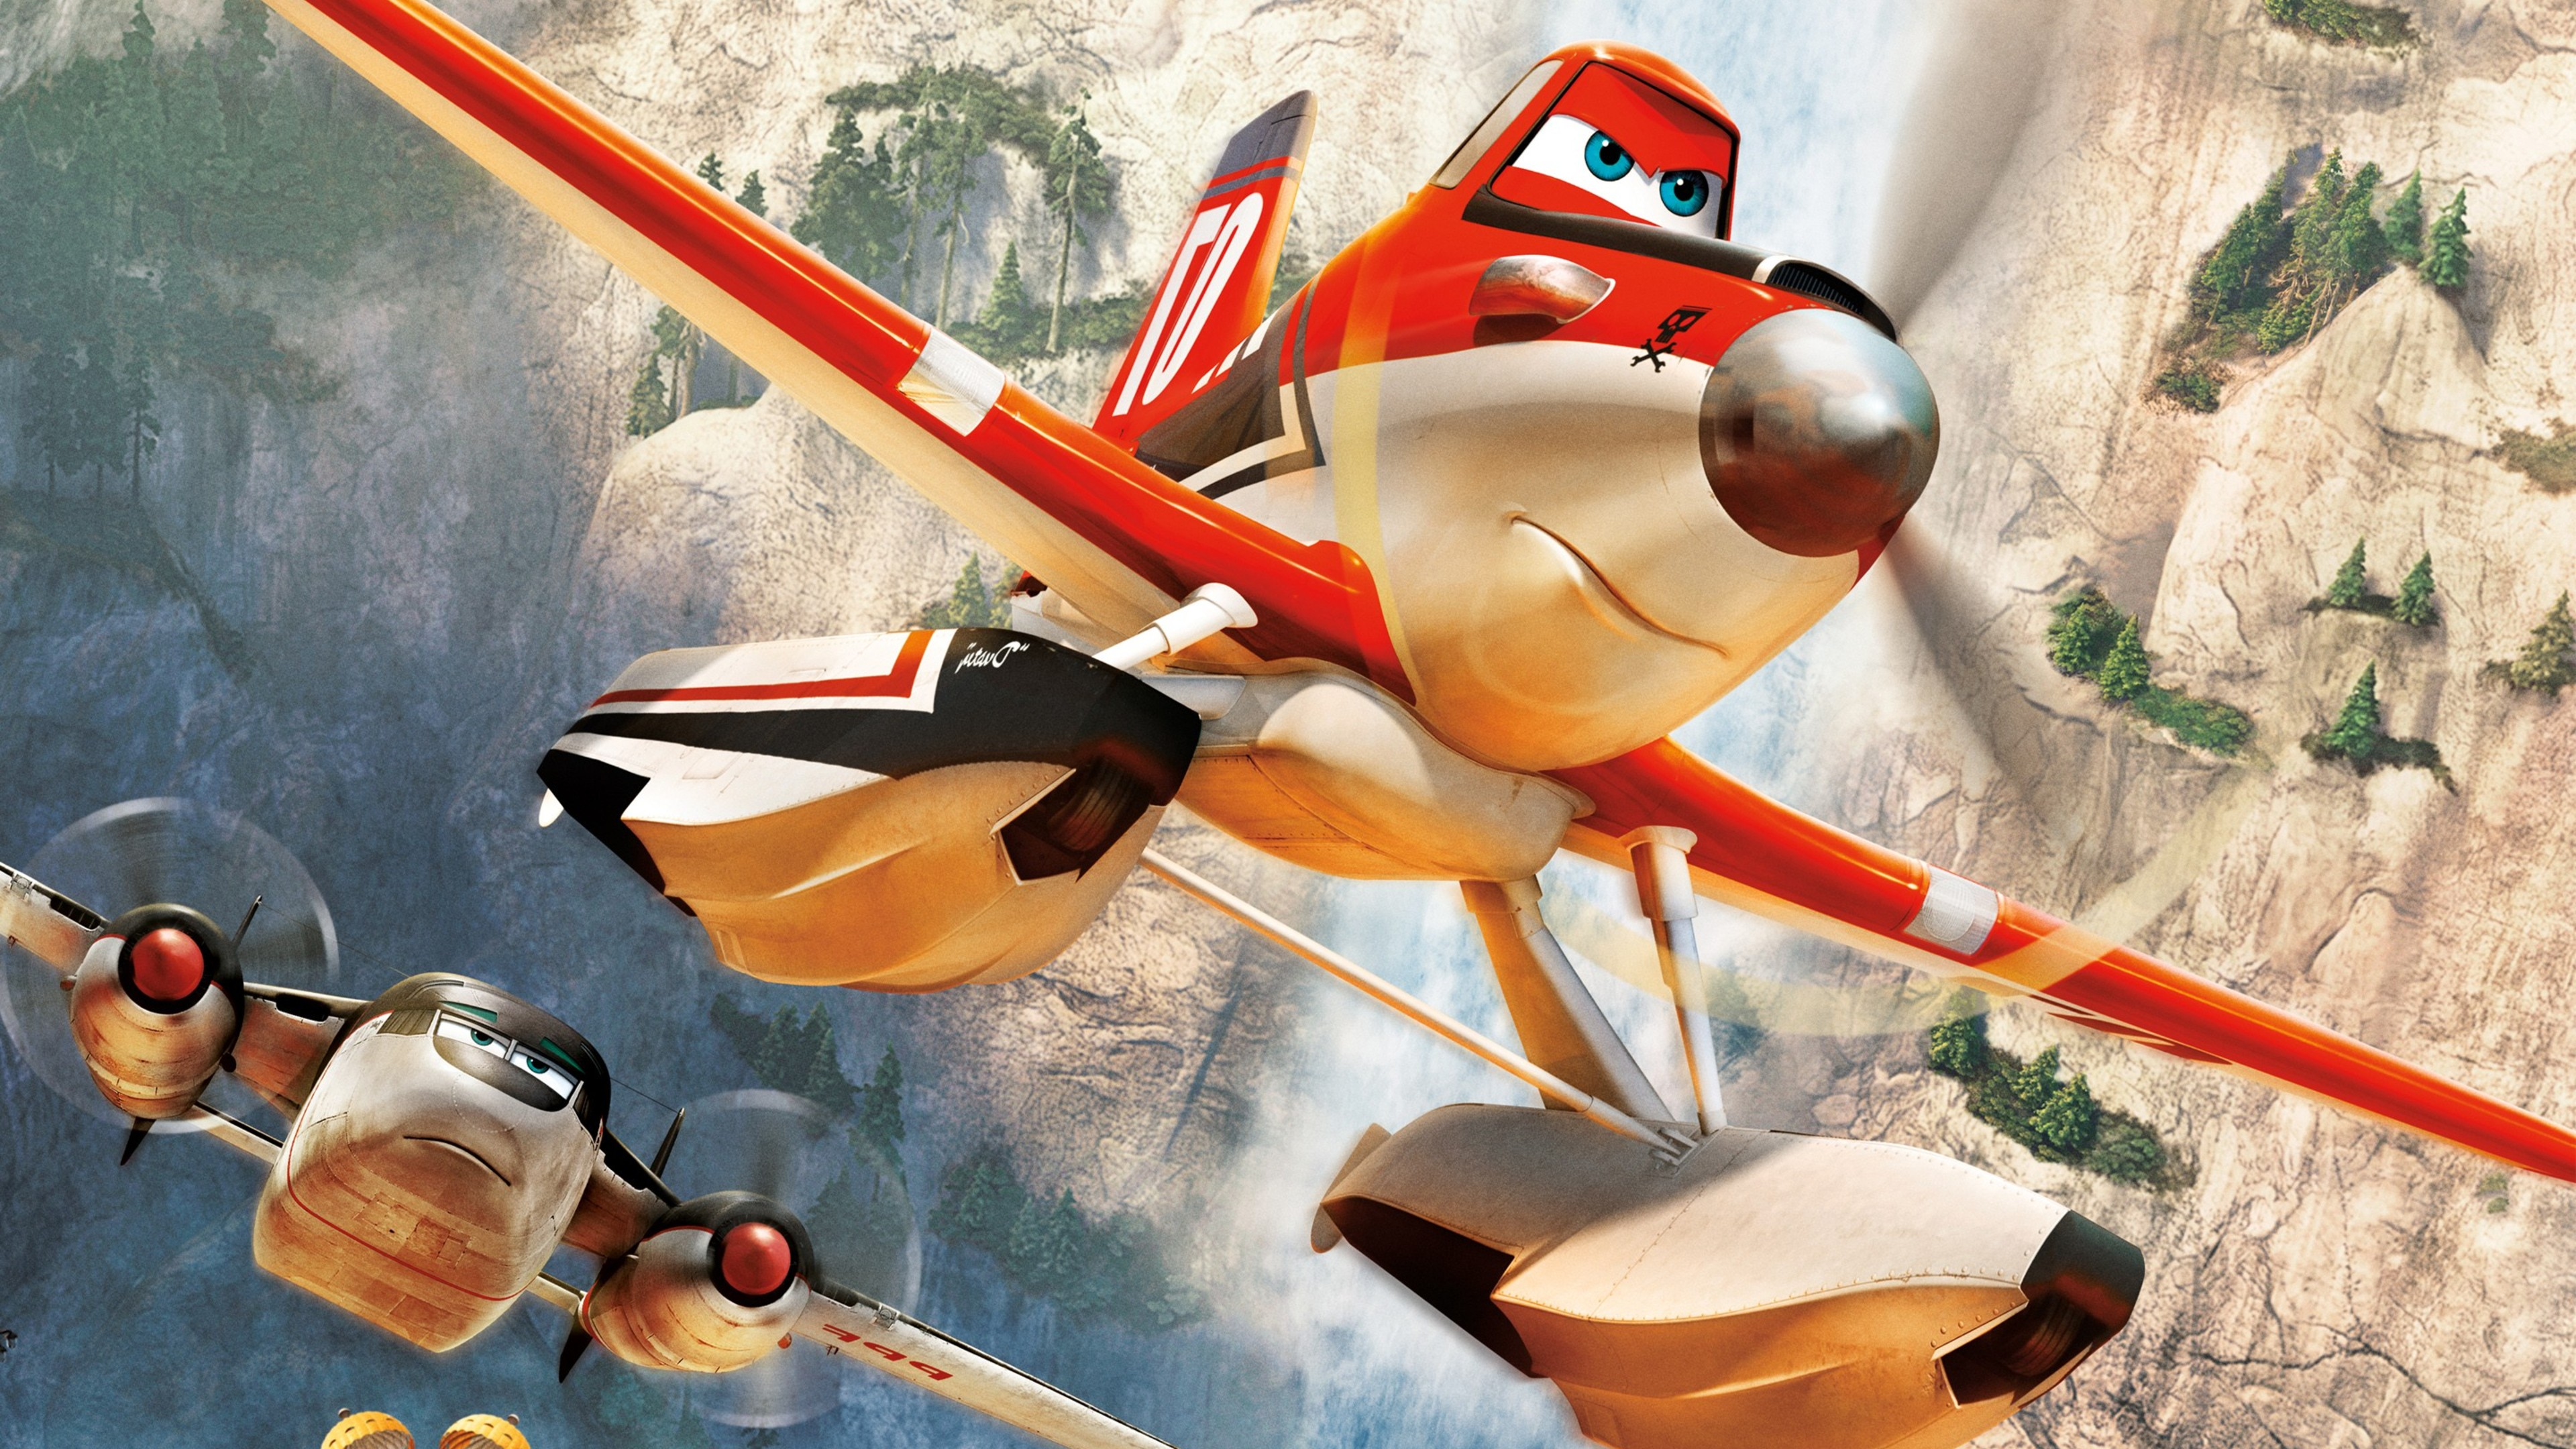 Movies with friends planes fire rescue christy lemire movies with friends planes fire rescue voltagebd Choice Image